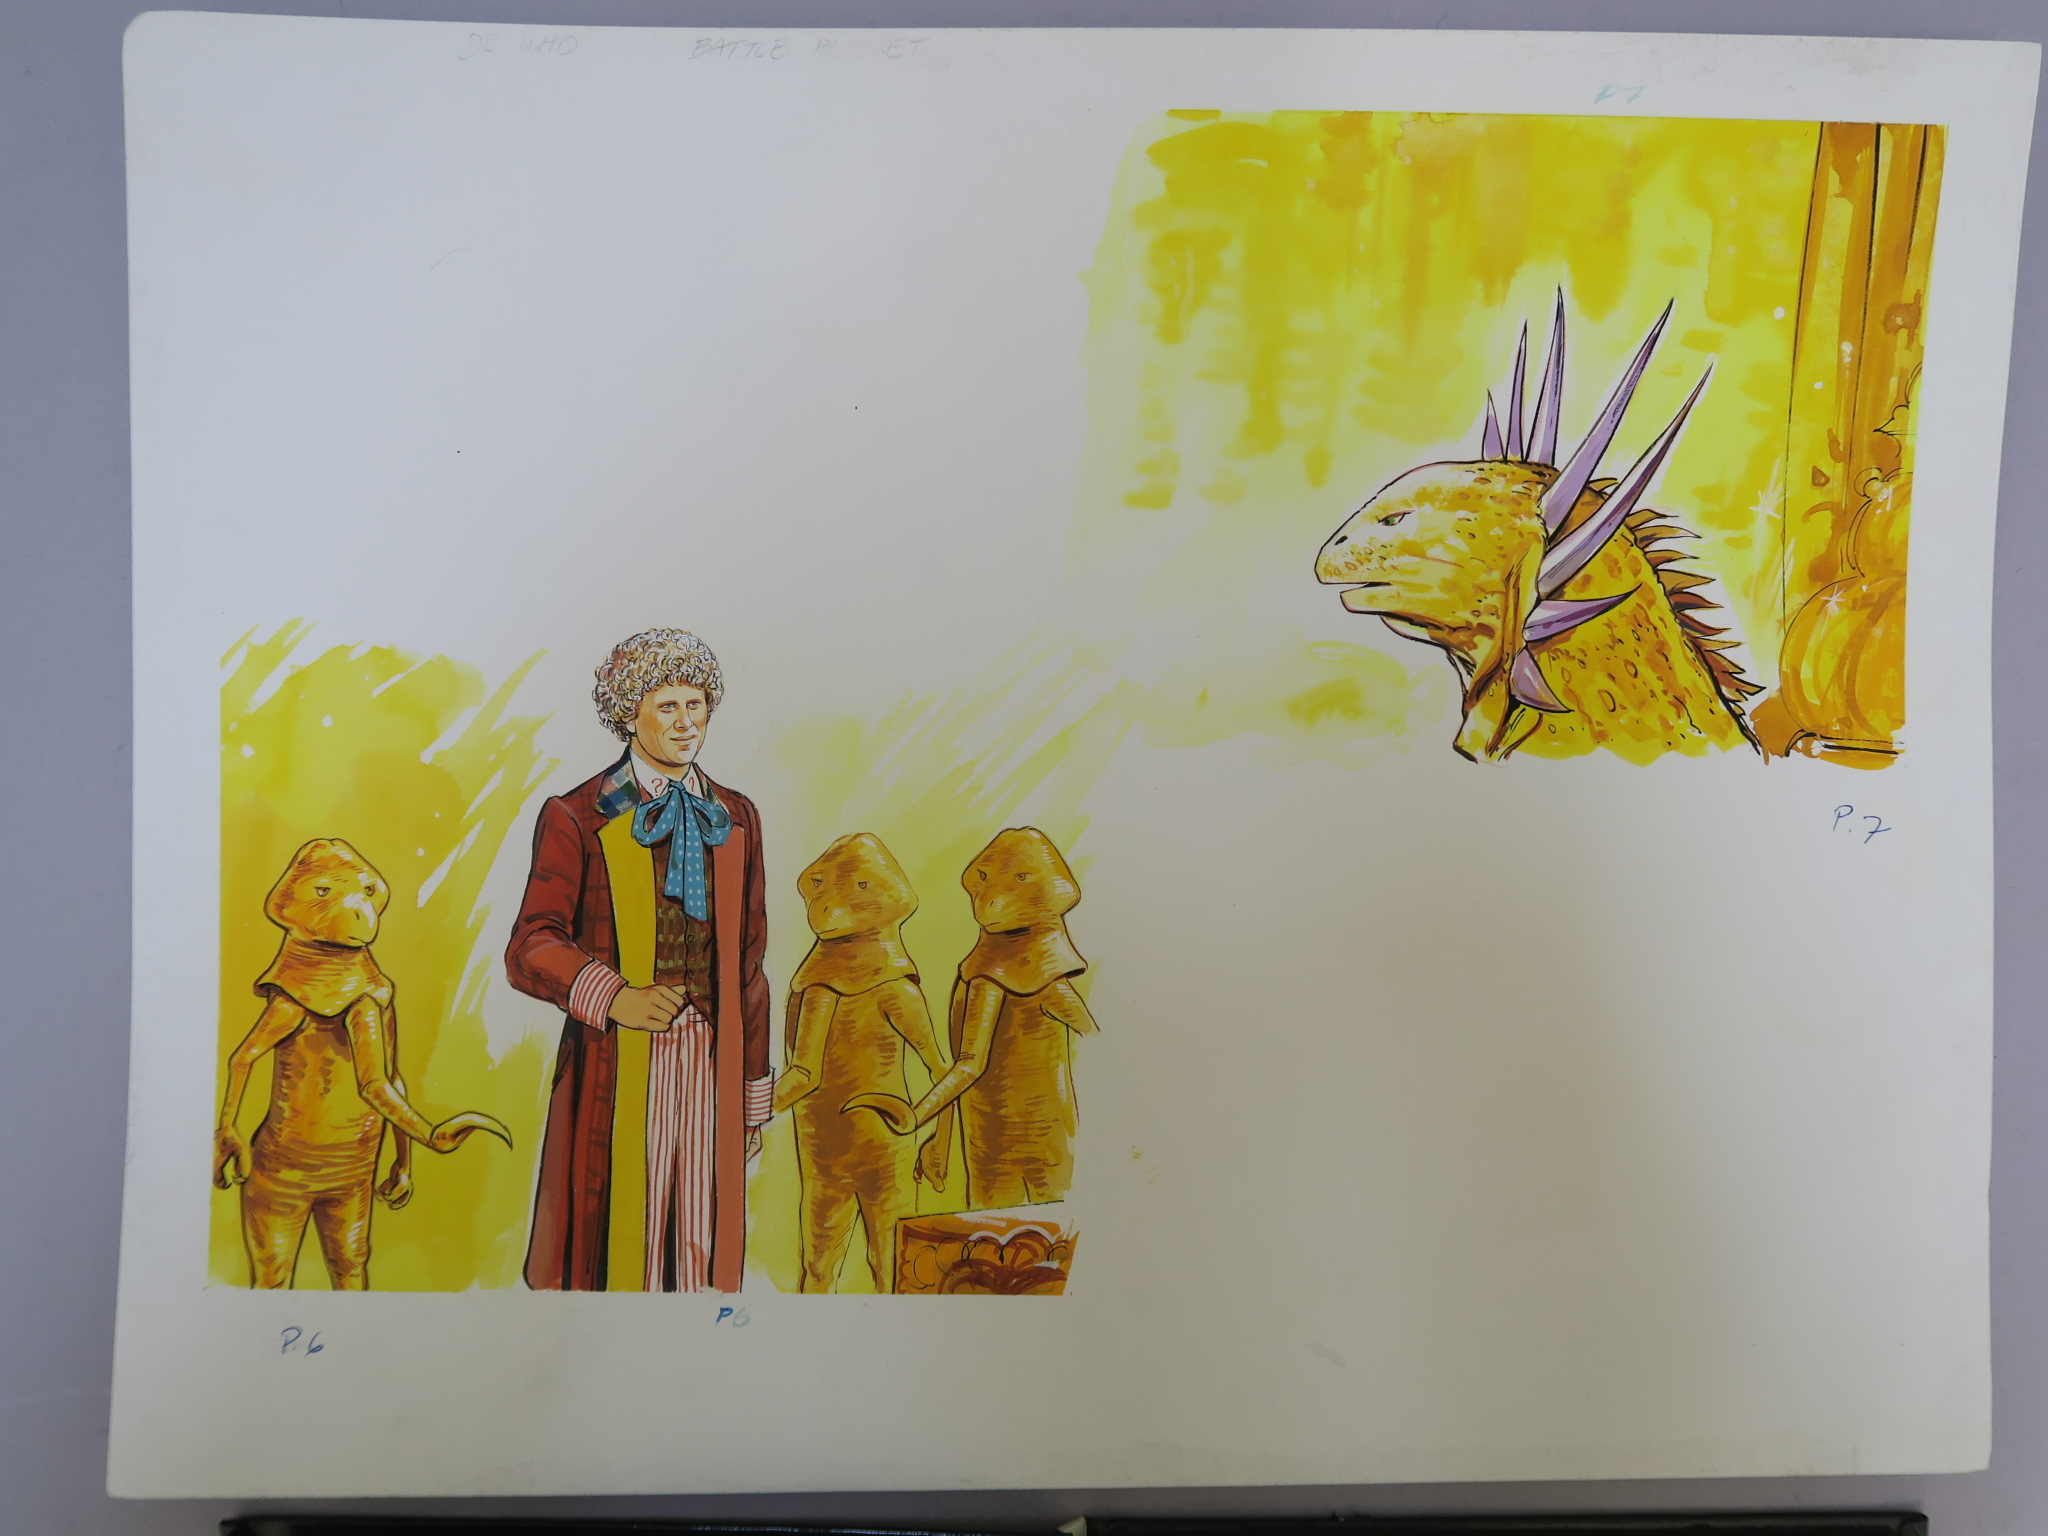 Lot 36 - Doctor Who original finished comic artwork in ink and watercolour on artist board as used for page 6